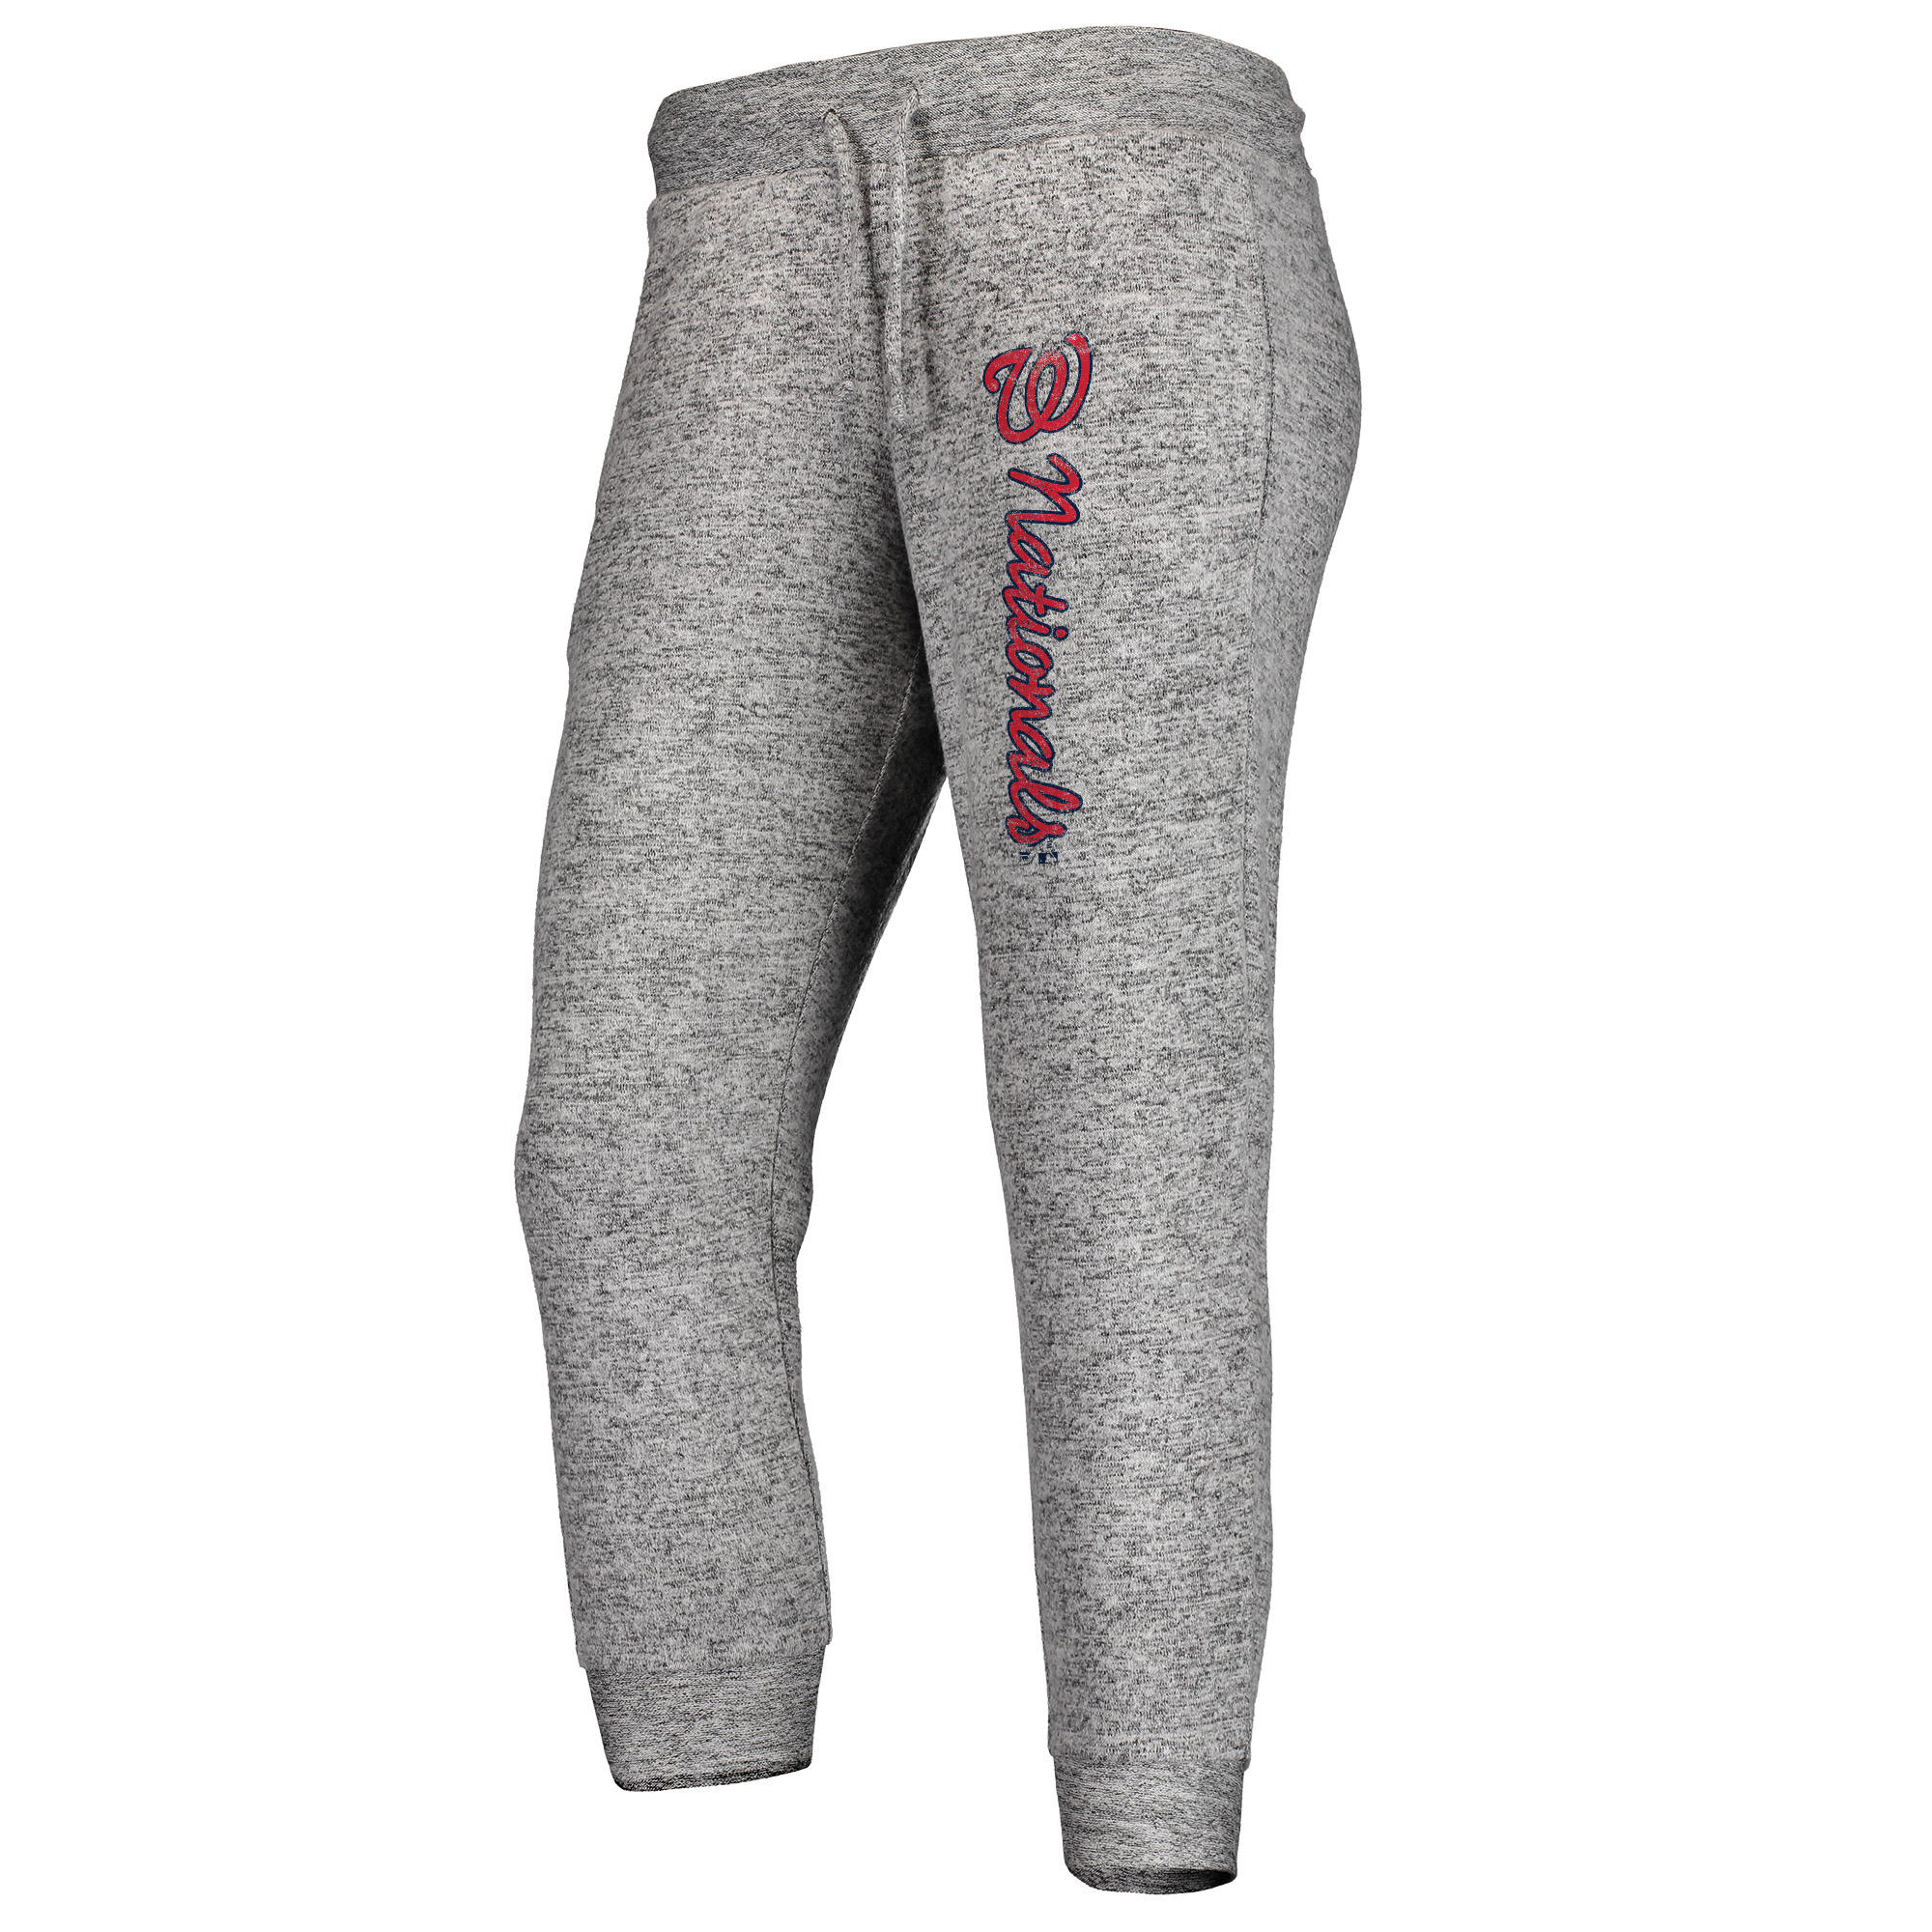 Washington Nationals Fanatics Branded Women's Cozy Steadfast Jogger Pants - Heathered Gray